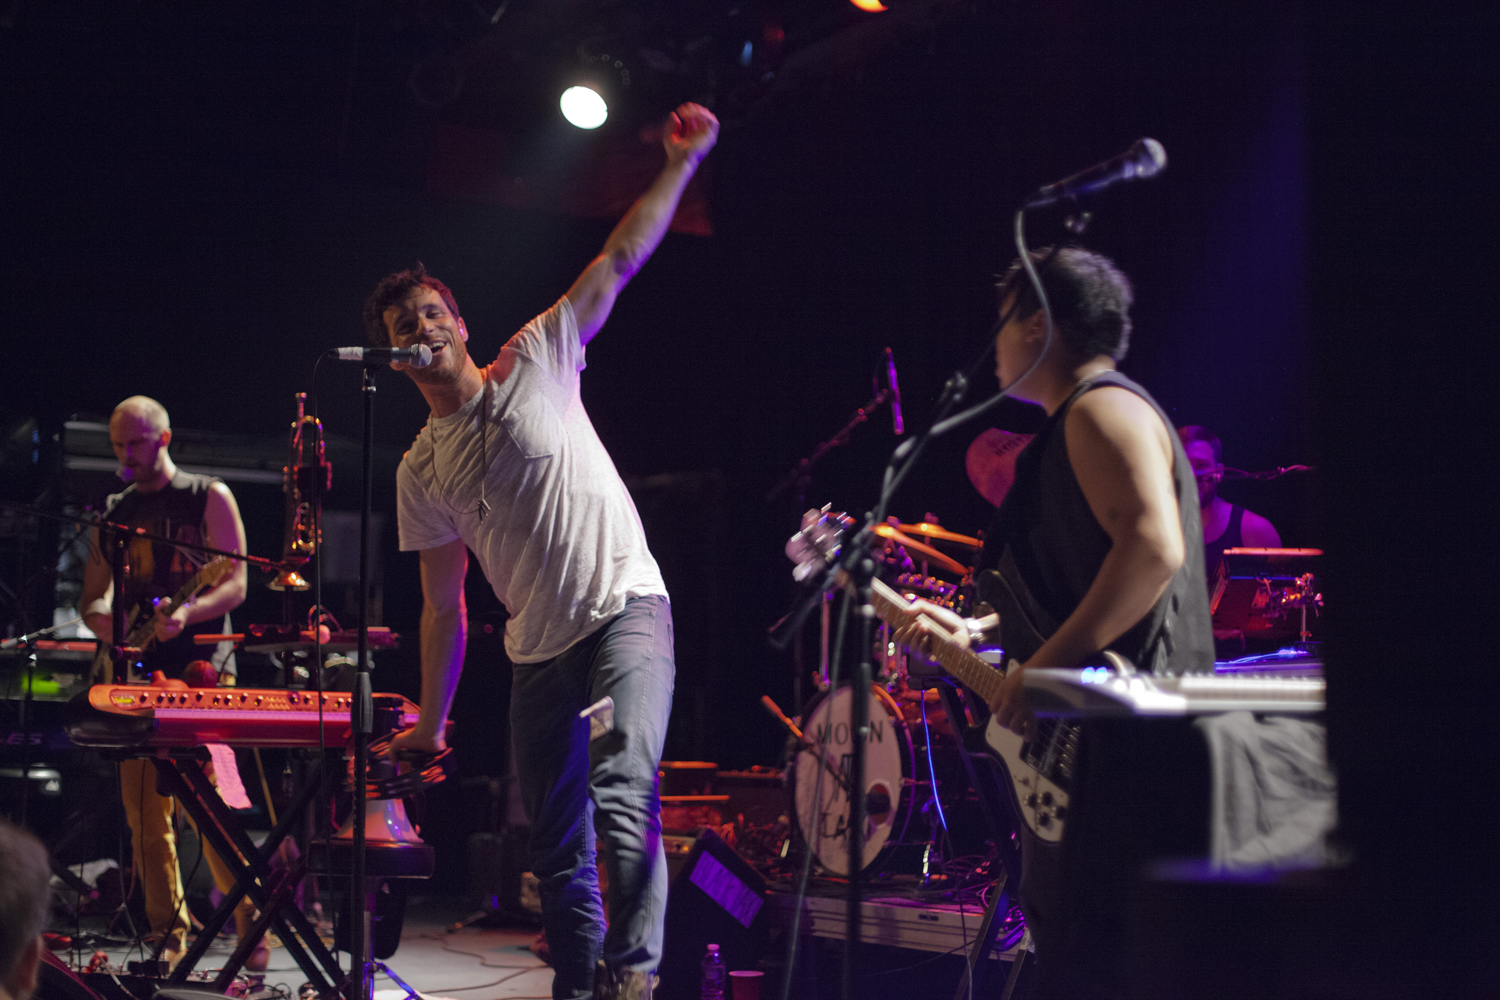 Black Taxi Live at Music Hall of Williamsburg by Kelly Valerius, Panacea3